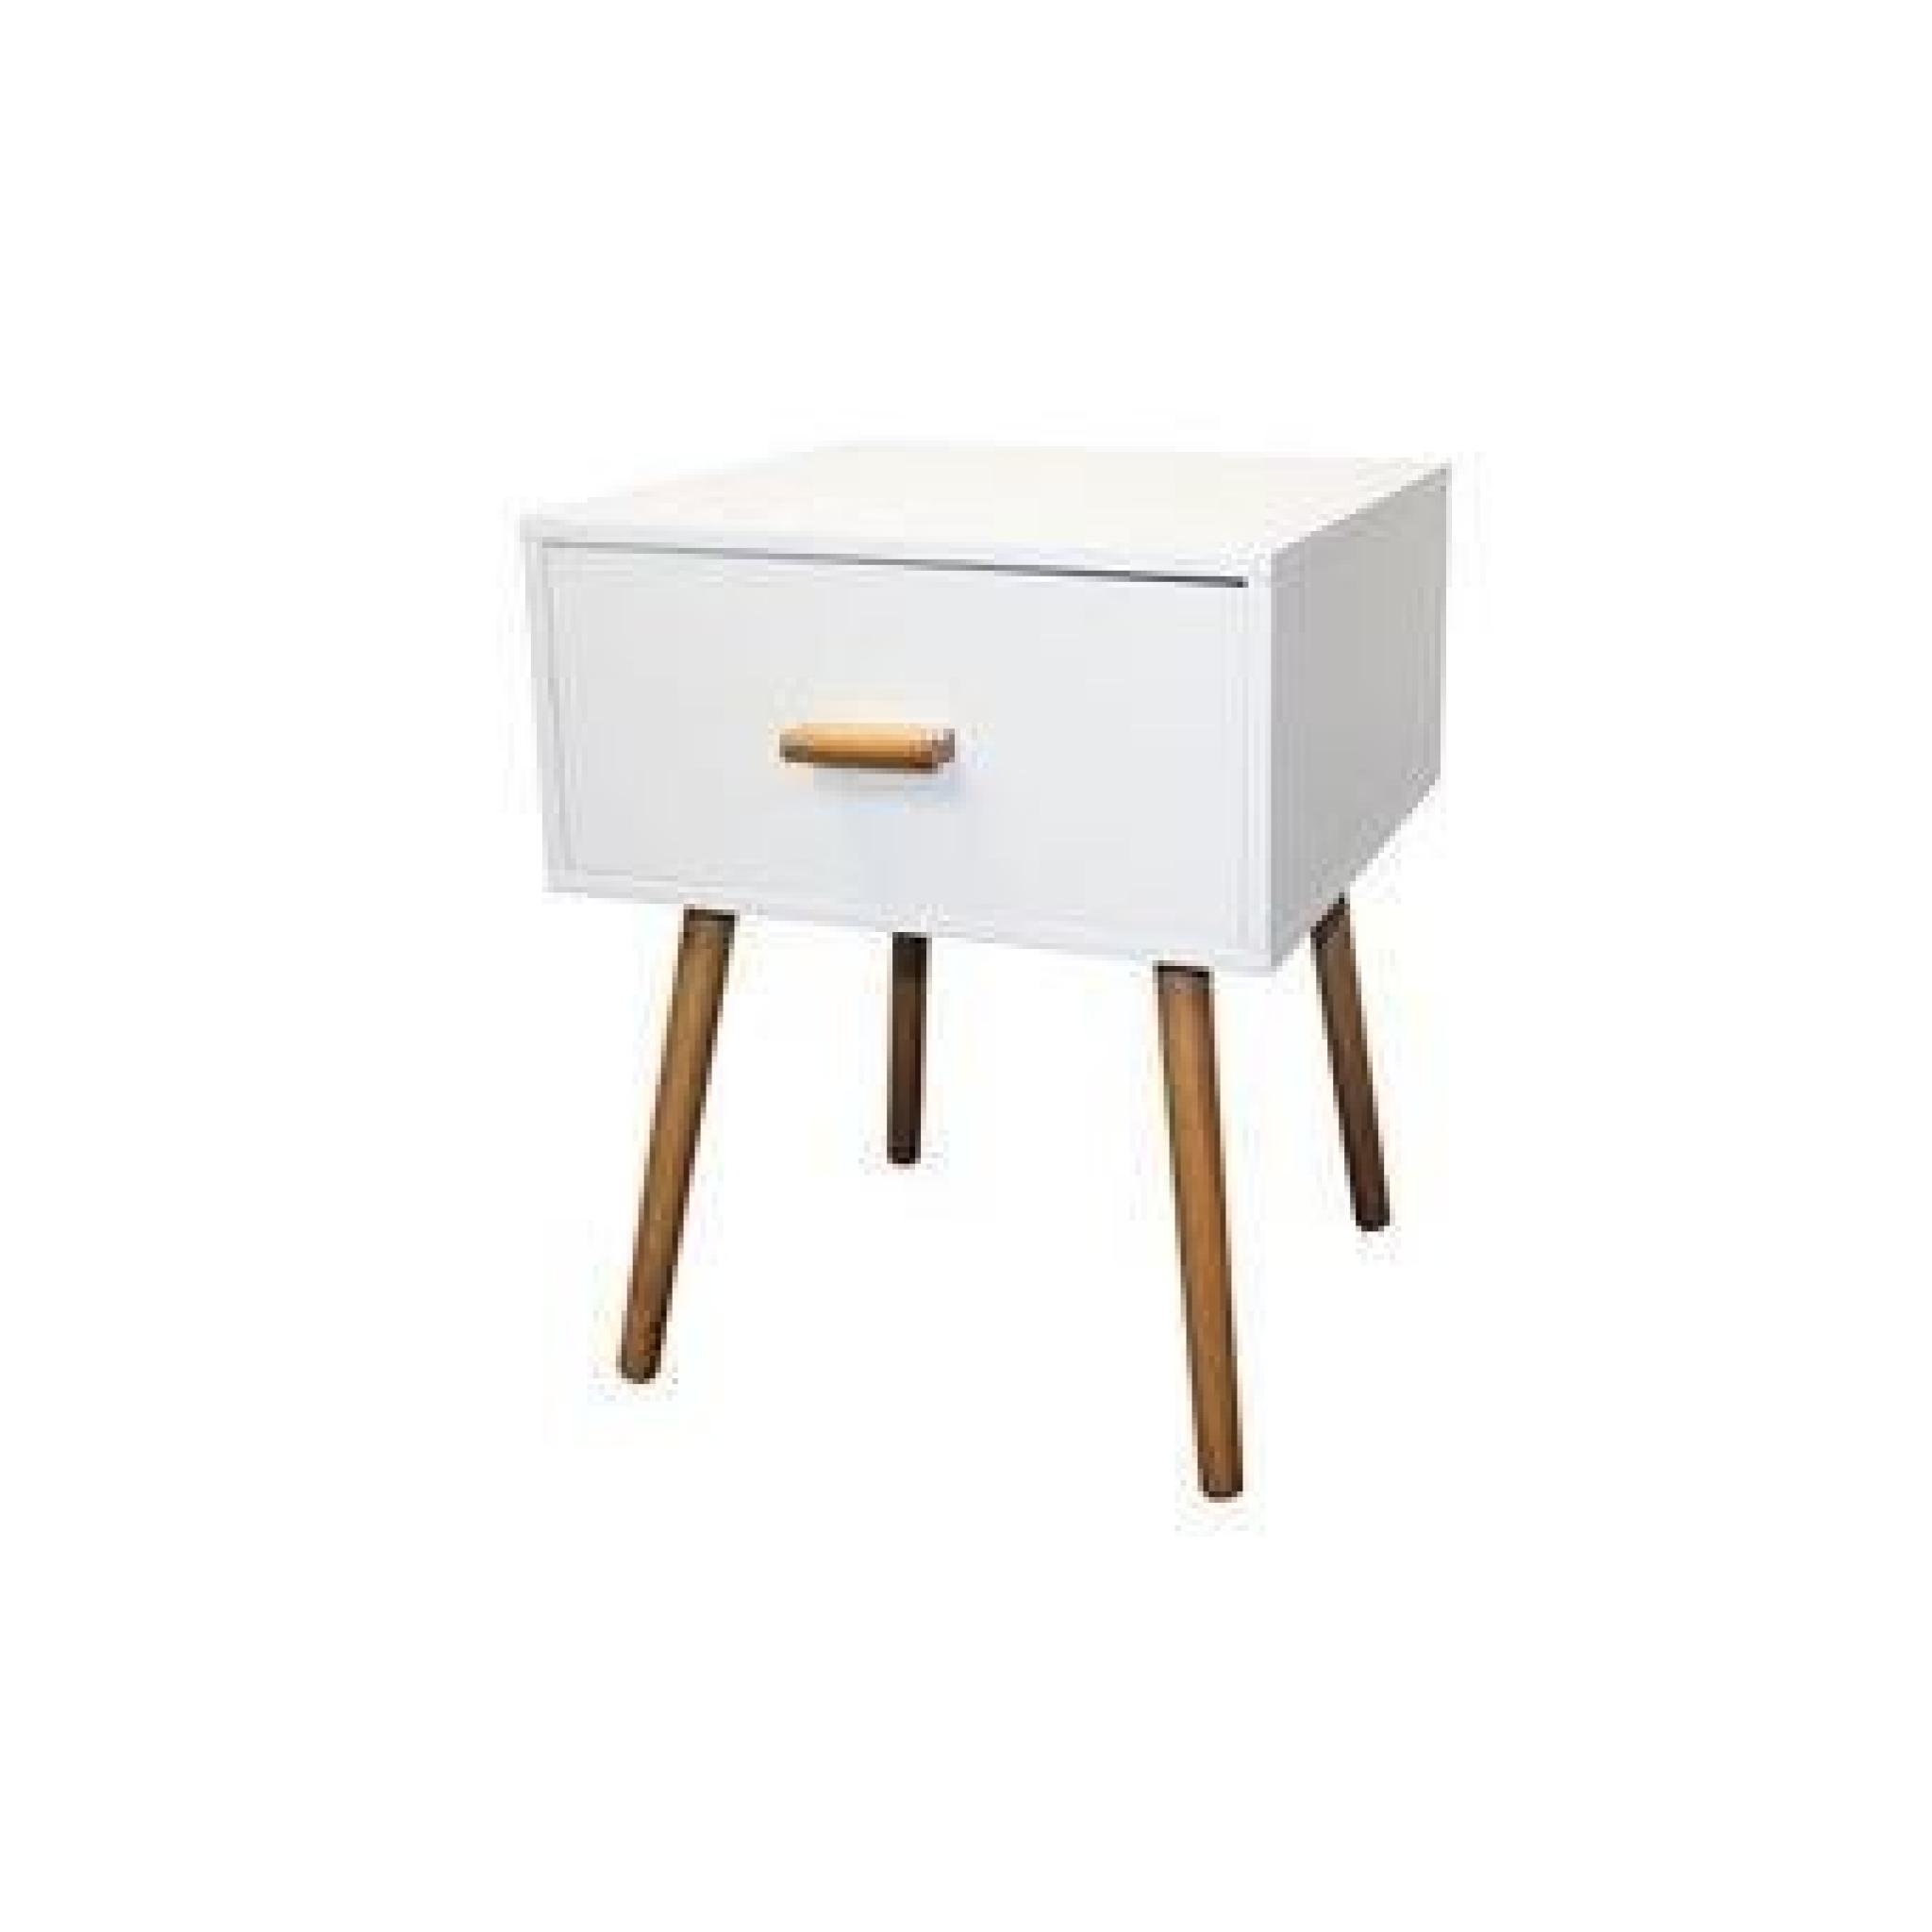 Table de chevet blanc design scandinave achat vente - Table de chevet blanche pas cher ...